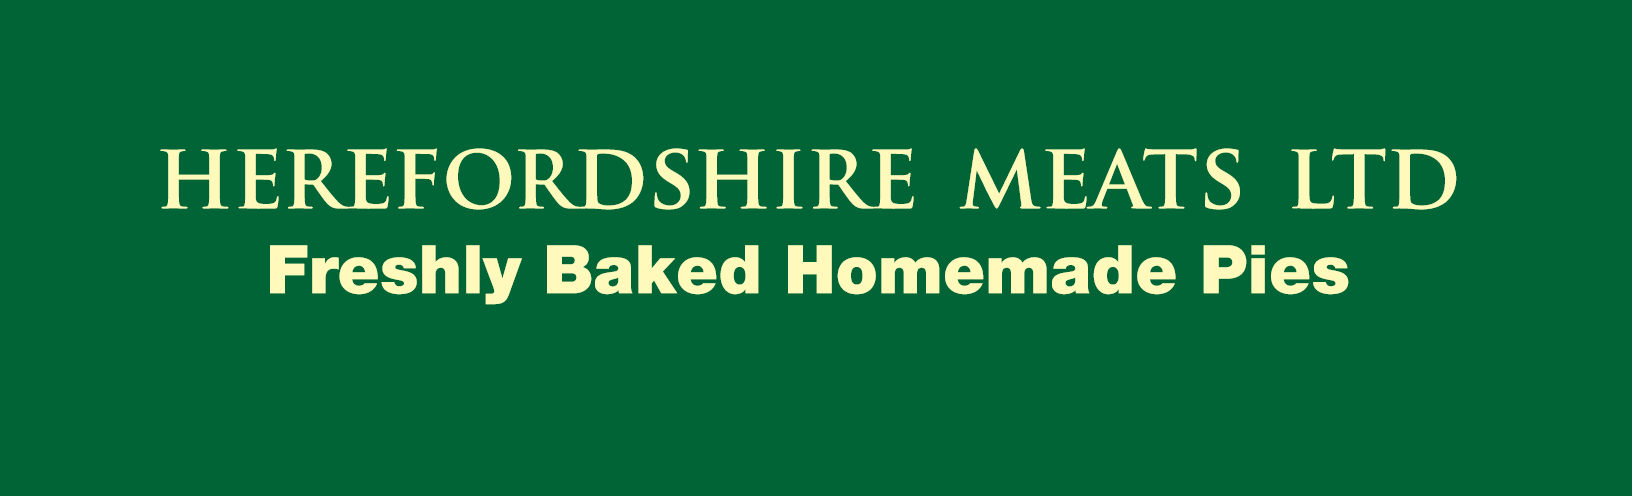 herefordshire meat freshly baked pies banner